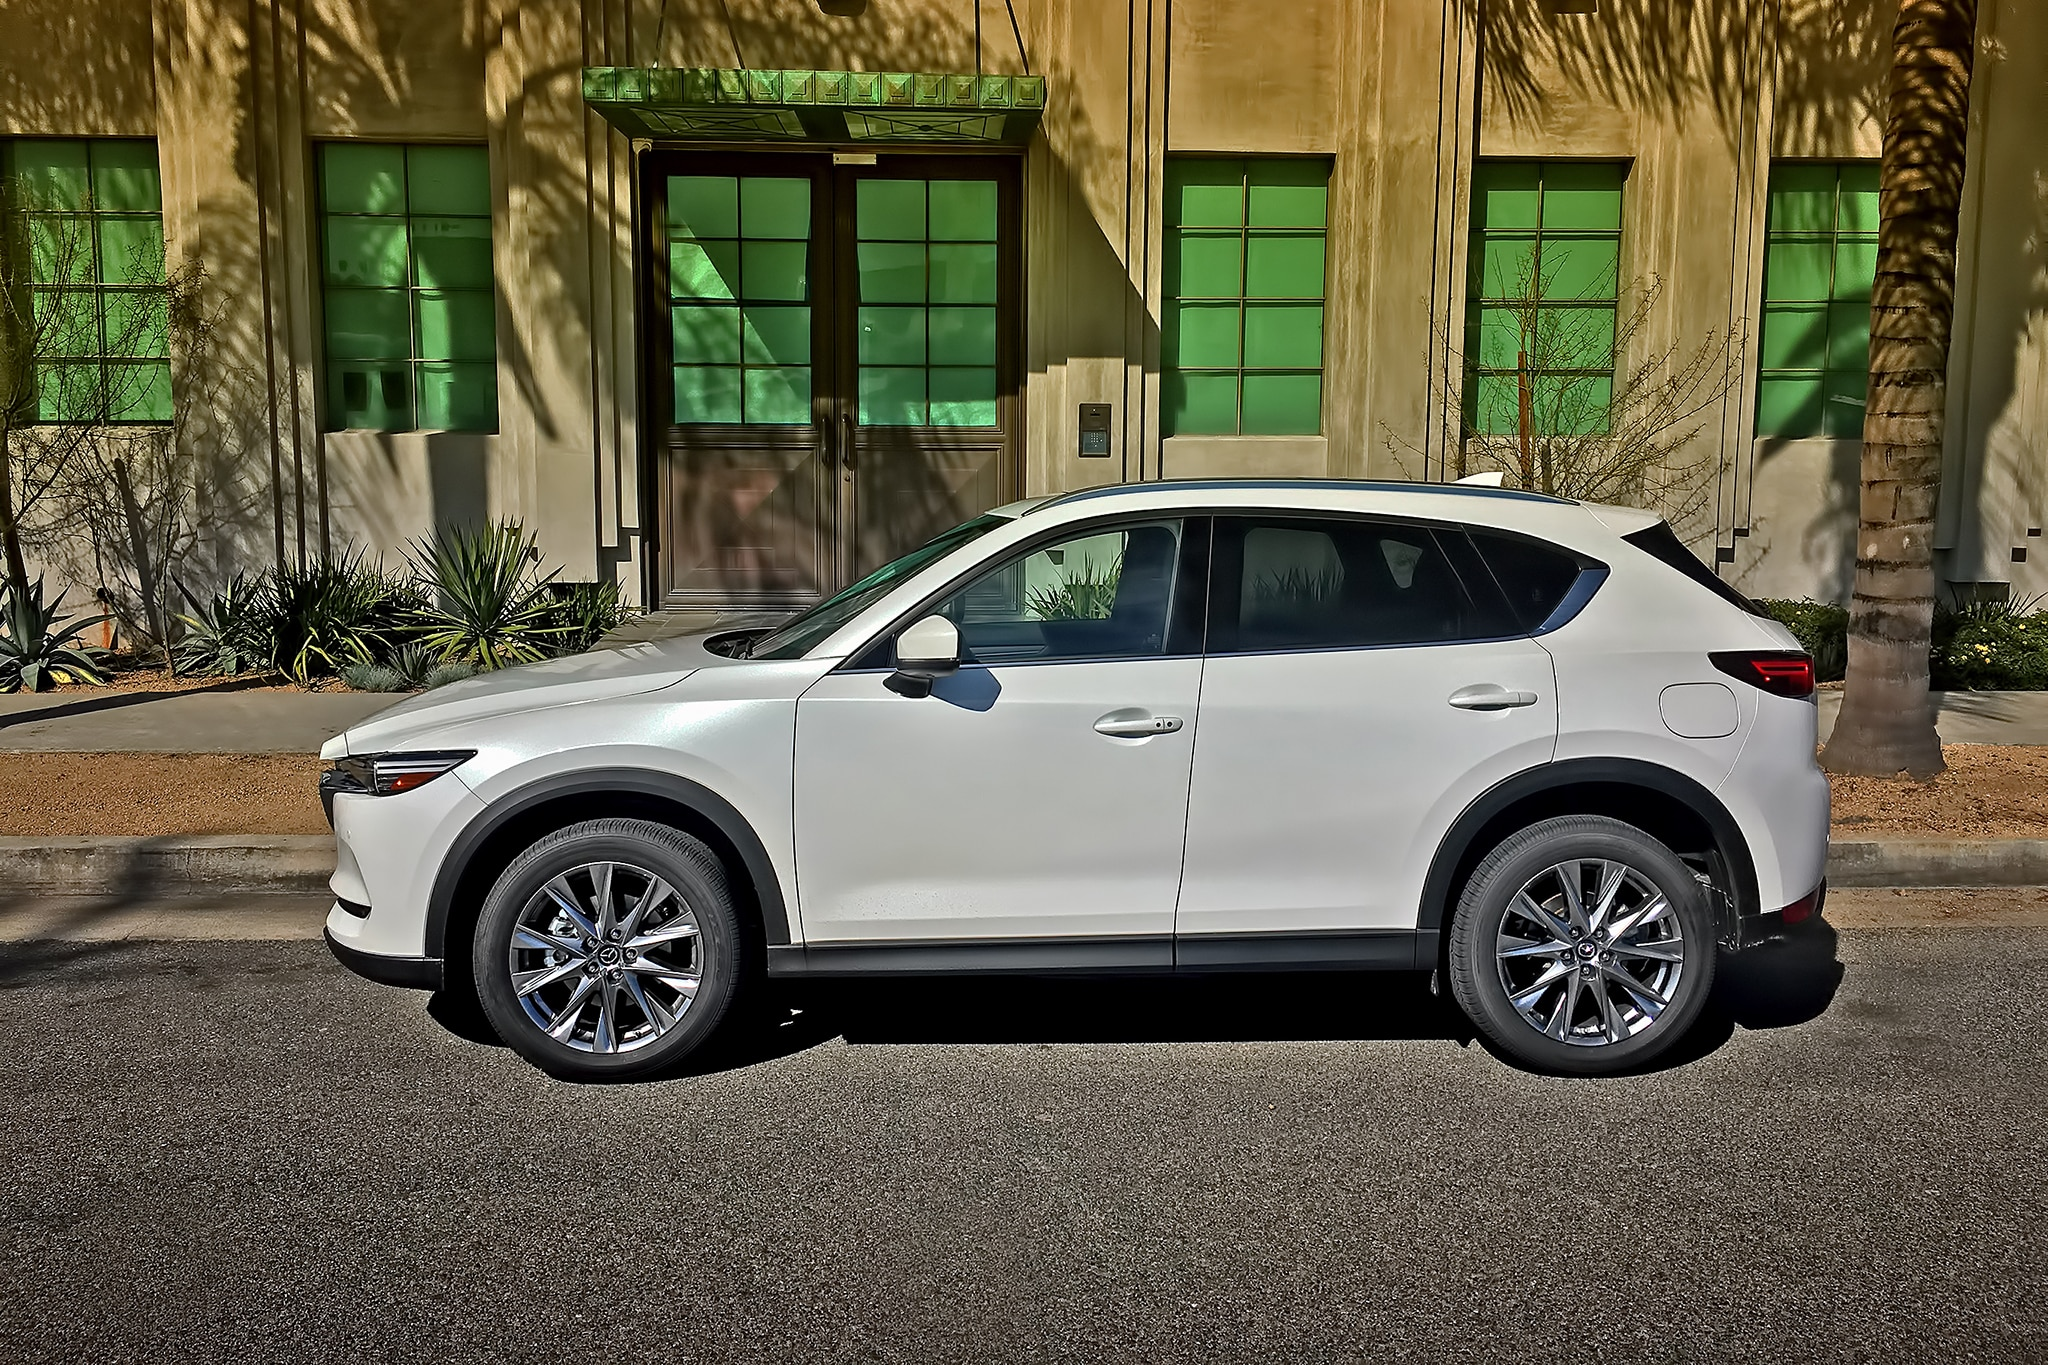 2019 Mazda CX-5 Turbo AWD Review: Even Better Under